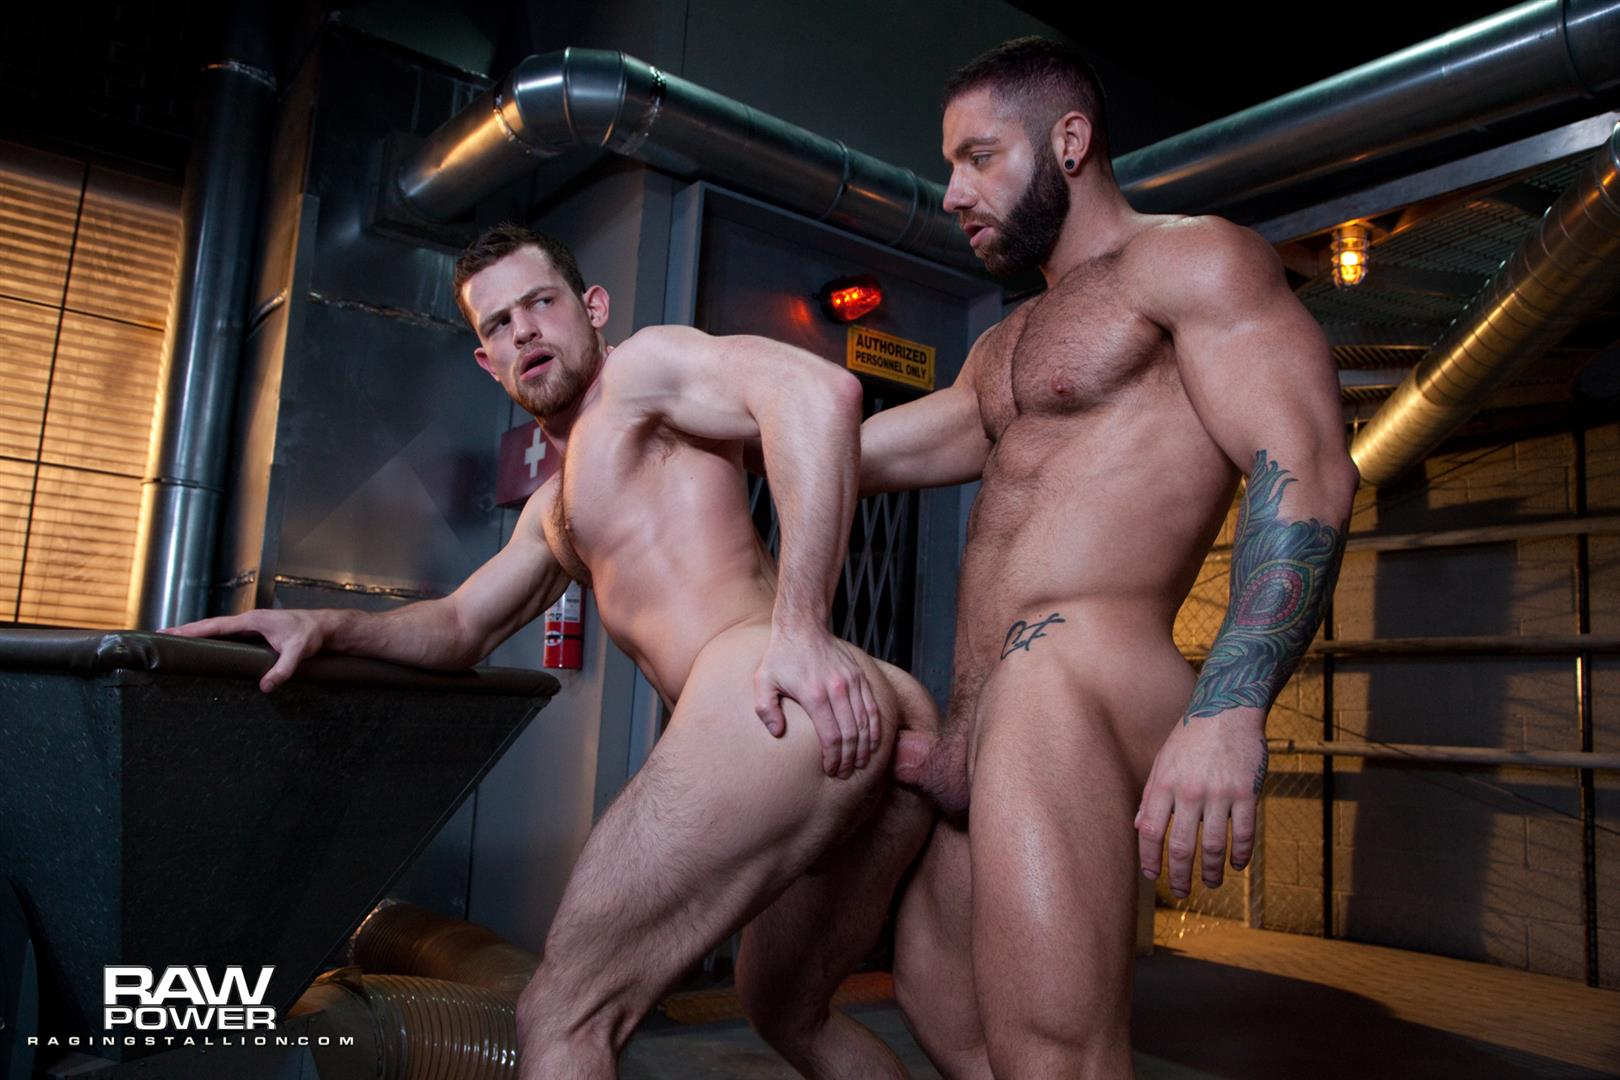 Raging-Stallion-Eddy-Ceetee-and-Kurtis-Wolfe-Big-Dick-Muscle-Hunks-Bareback-Sex-Video-11 ALERT: Raging Stallion Goes Bareback For The First Time With Eddy Ceetee and Kurtis Wolfe